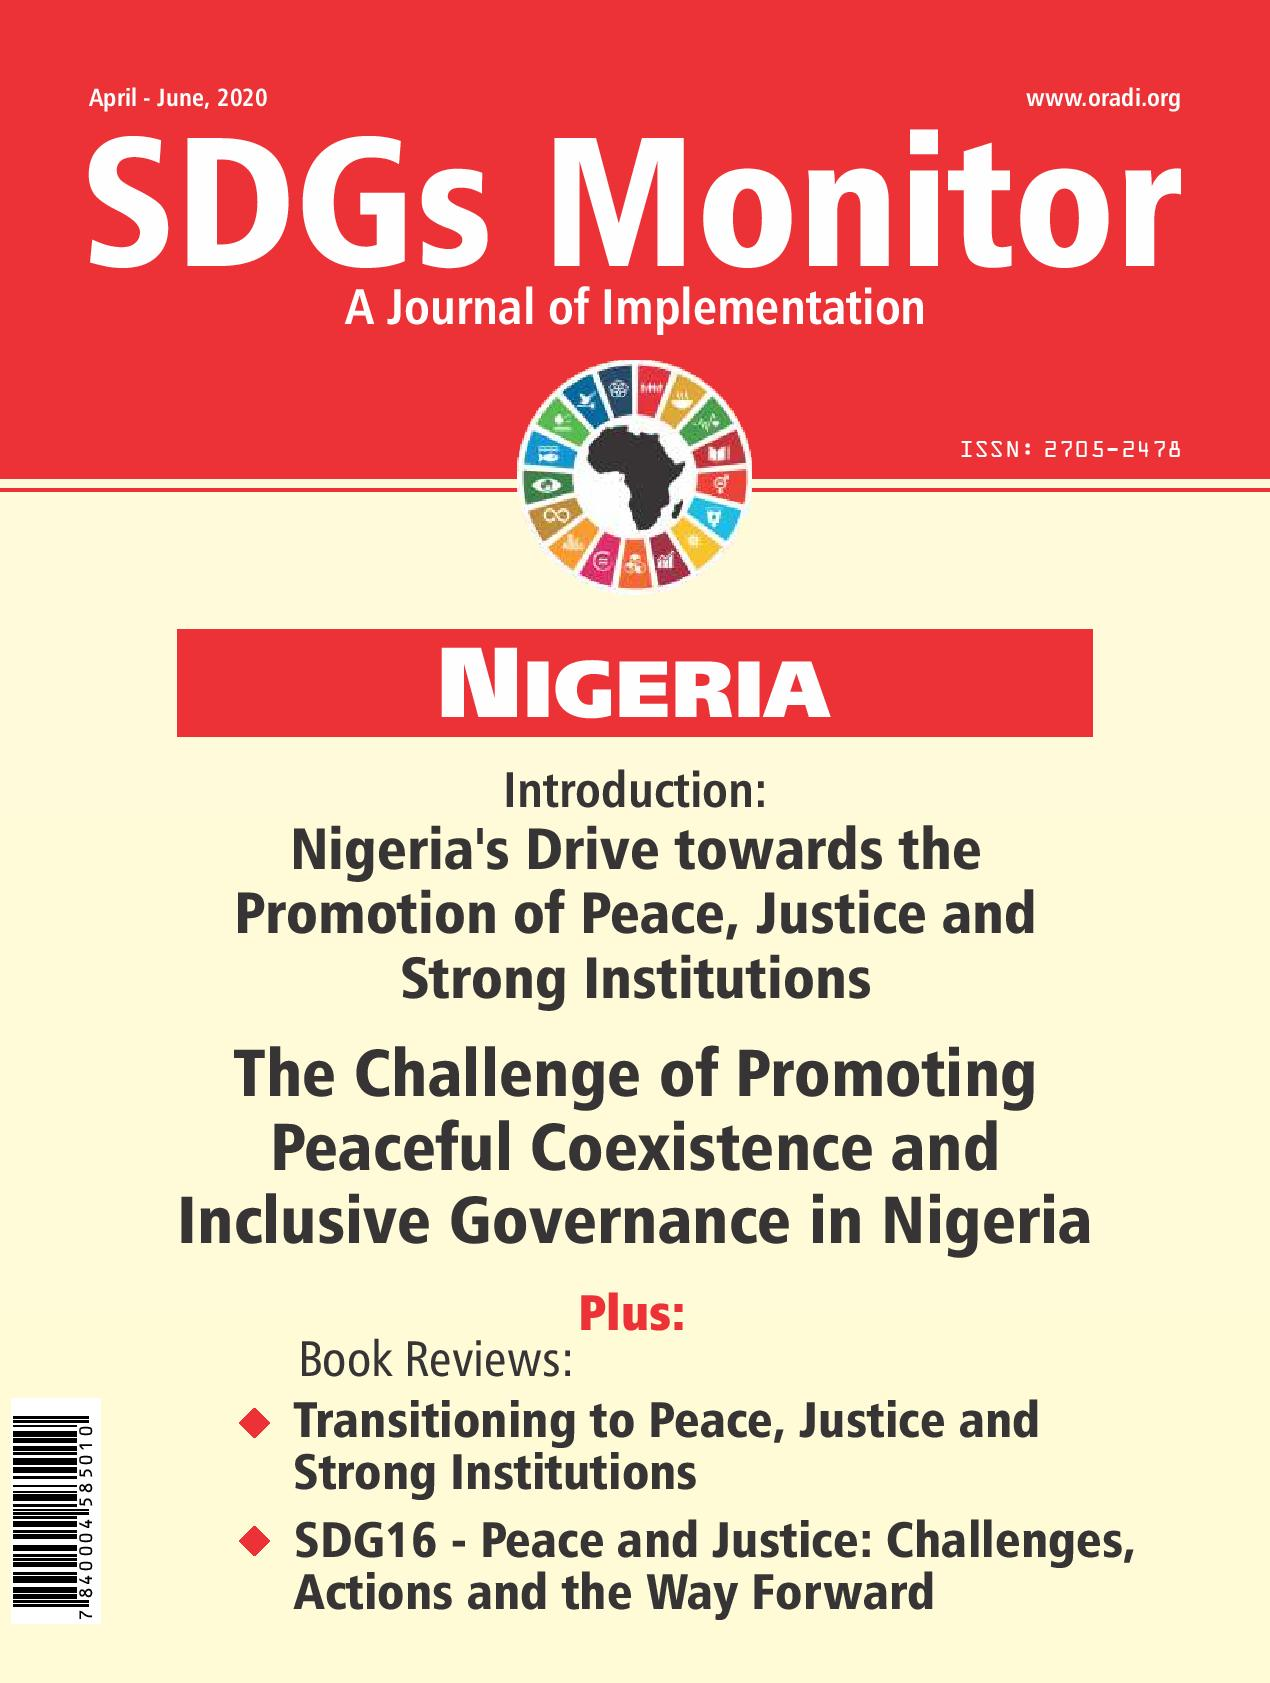 SDGs Monitor Journal (April - June, 2020)